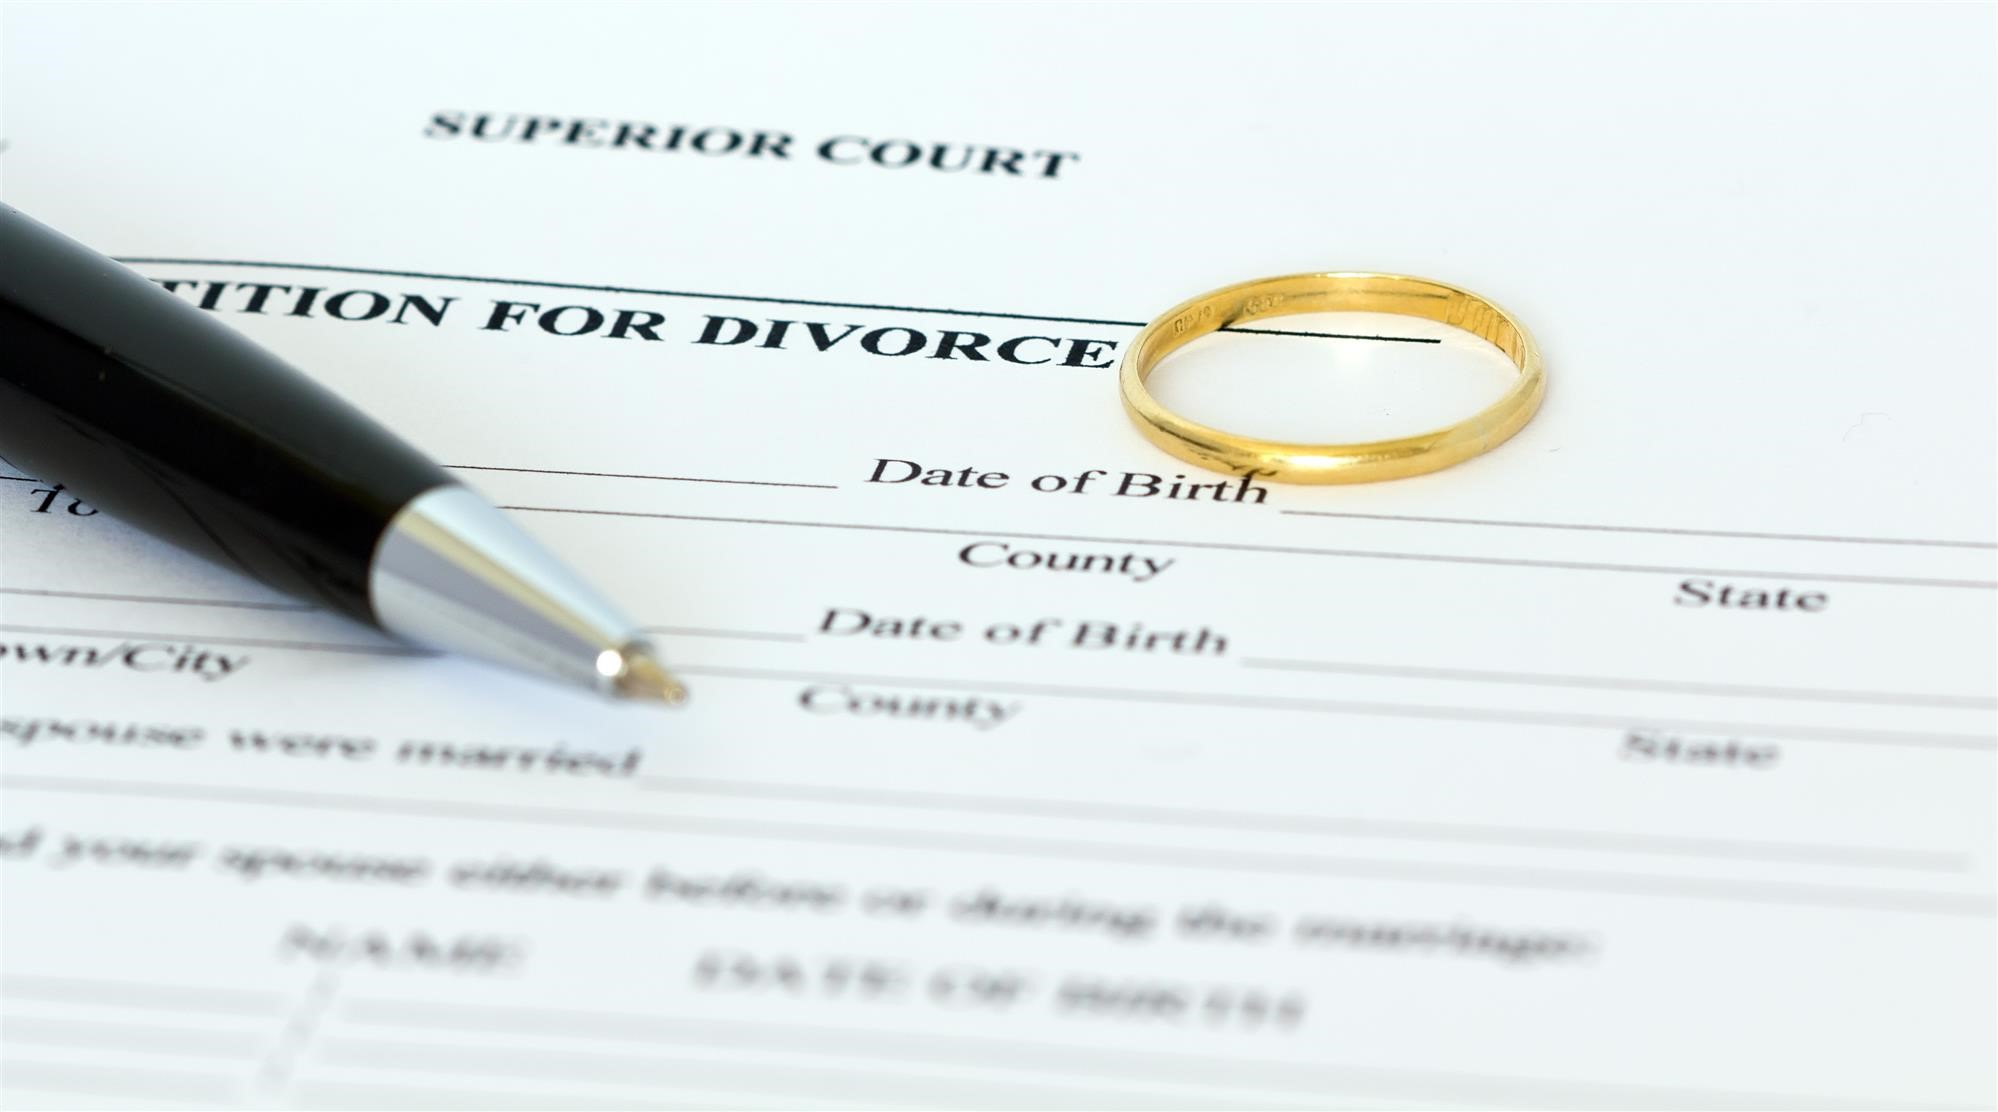 Expert Mortgage Advice - What to Do After a Divorce